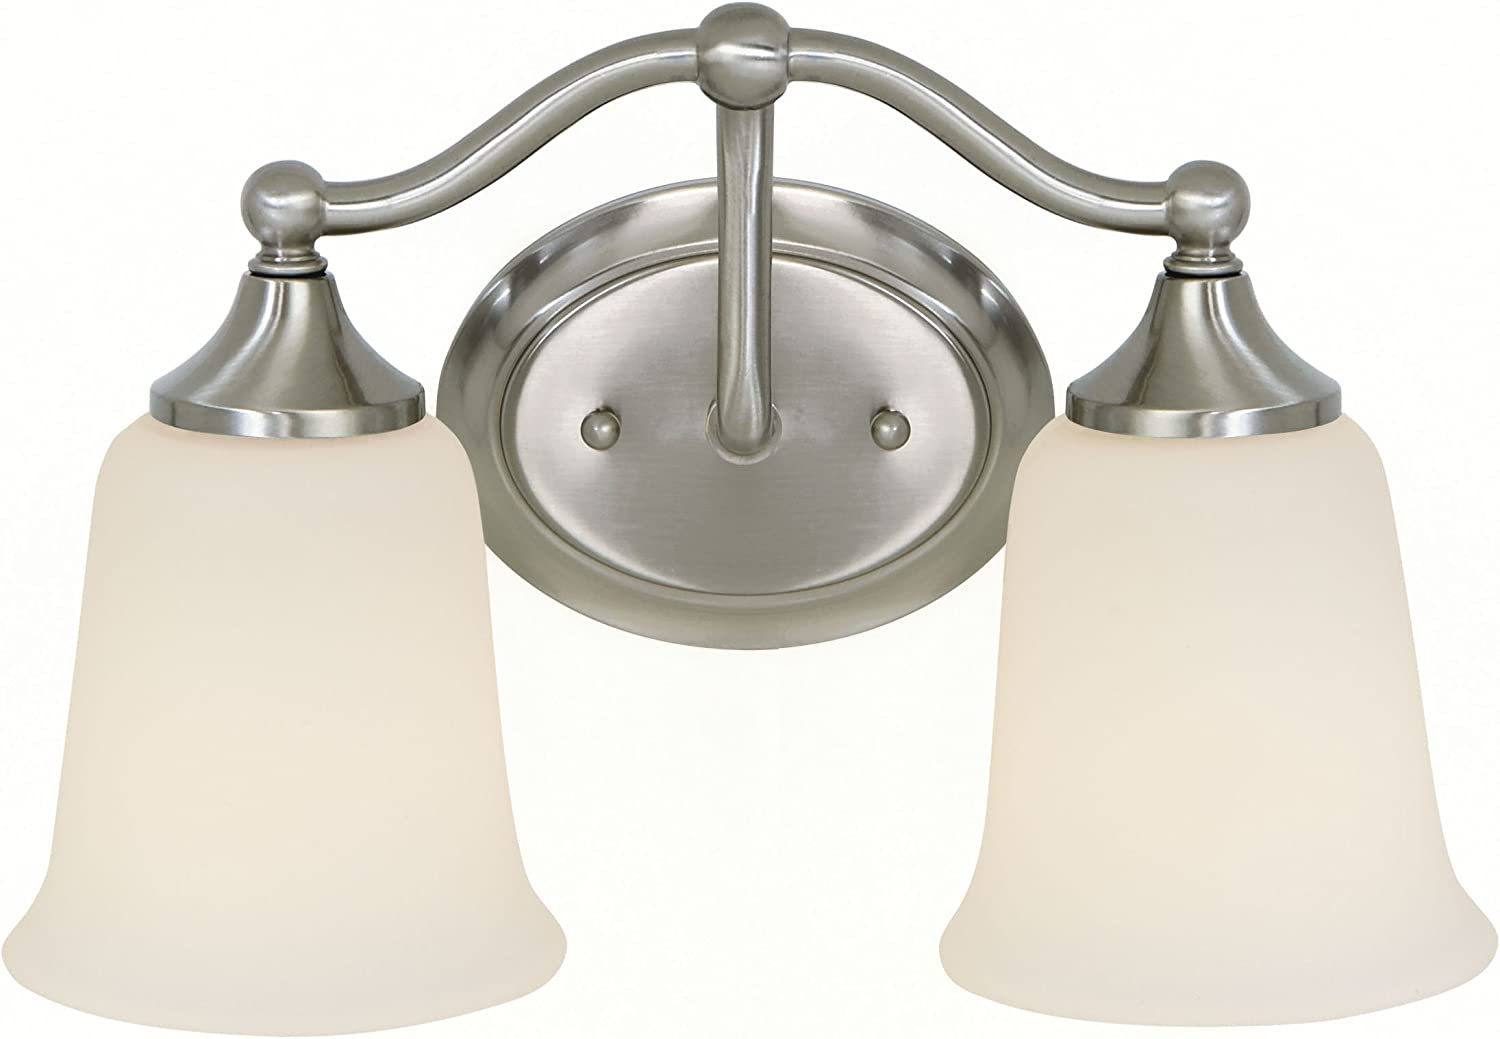 Feiss VS10502-BS Claridge Glass Wall Vanity Bath Lighting, Satin Nickel, 2-Light 13 W x 8 H 200watts